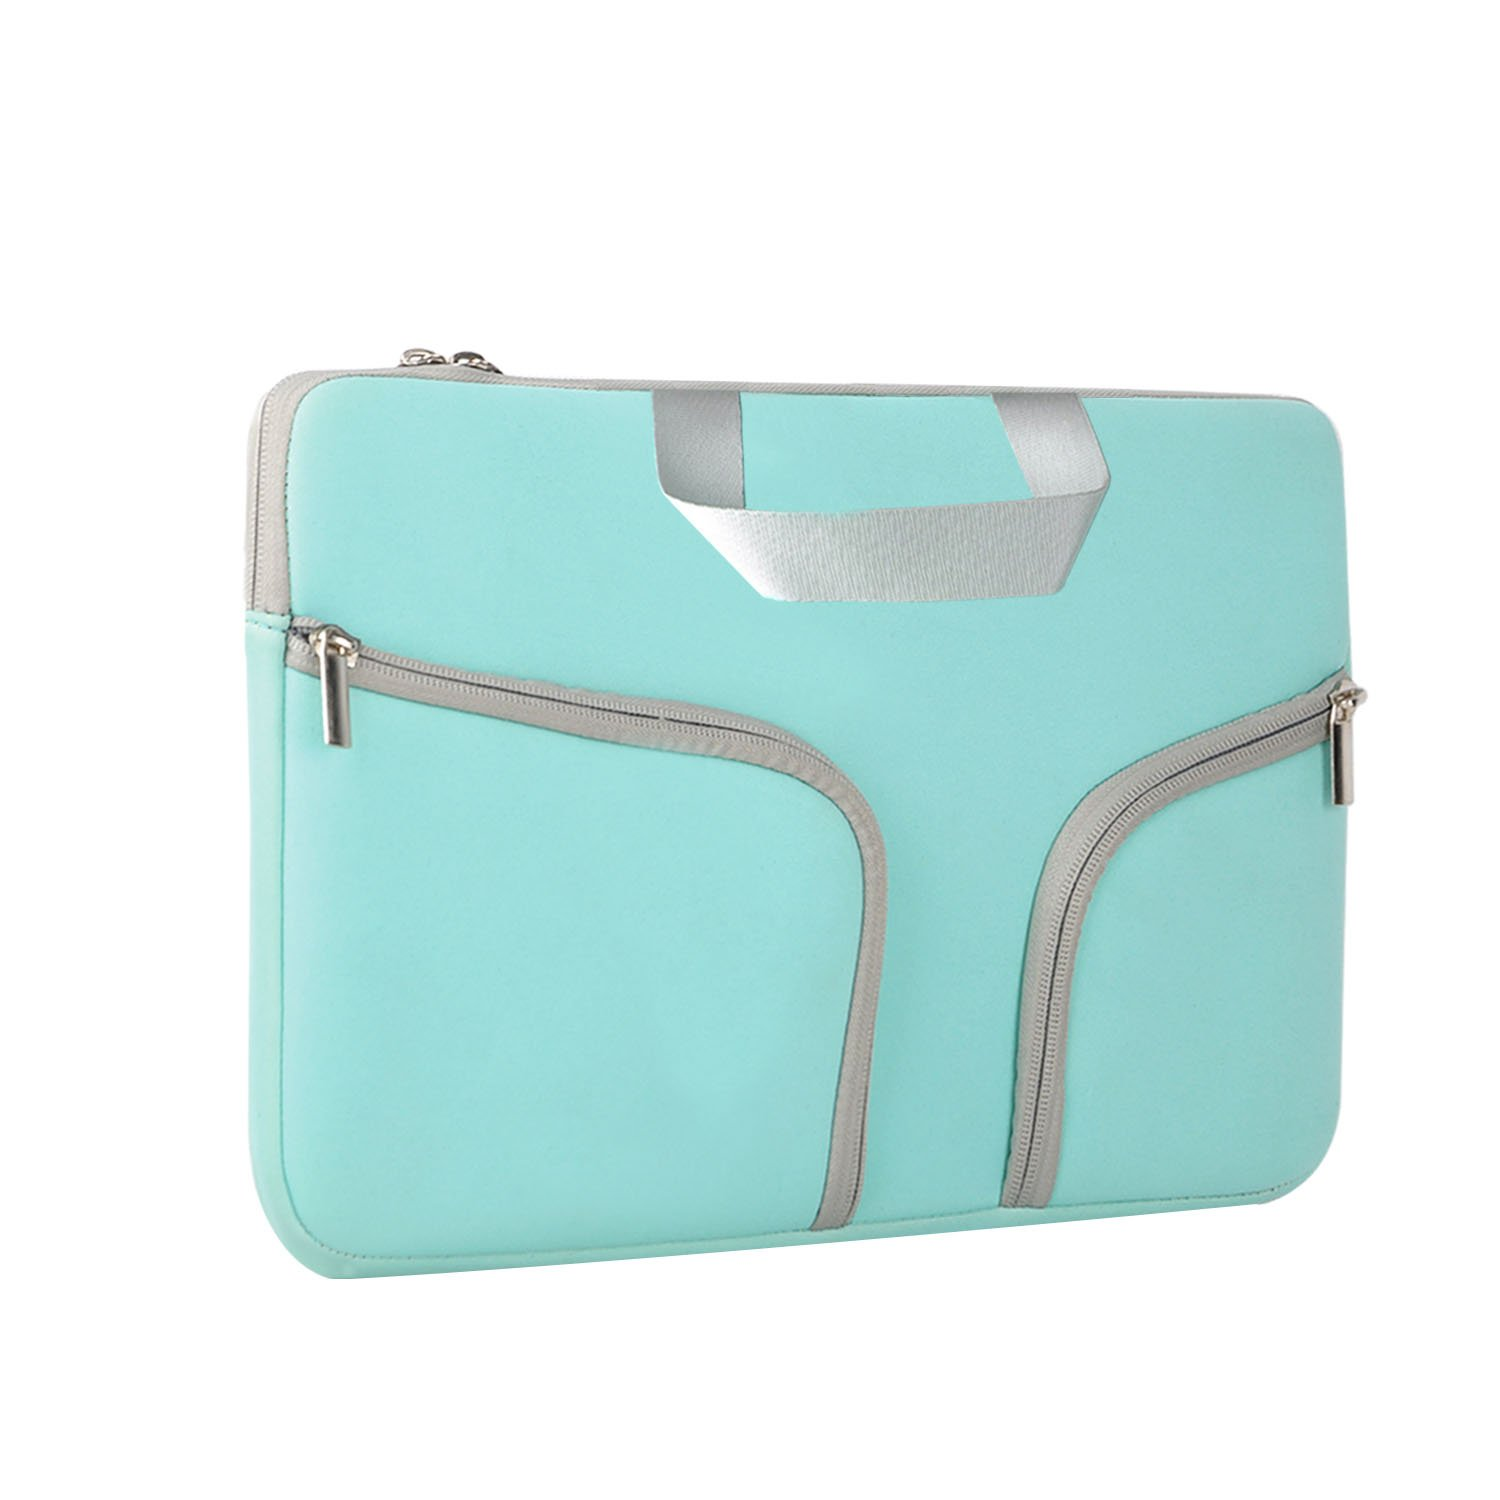 HESTECH Chromebook Case, 11.6-12.3 inch Neoprene Laptop Sleeve Case Bag Handle Compatible with Acer Chromebook r11/HP Stream/Samsung/Lenovo C330/ASUS C202/MacBook air 11/ Surface Pro3/Pro4, Mint Green by HESTECH